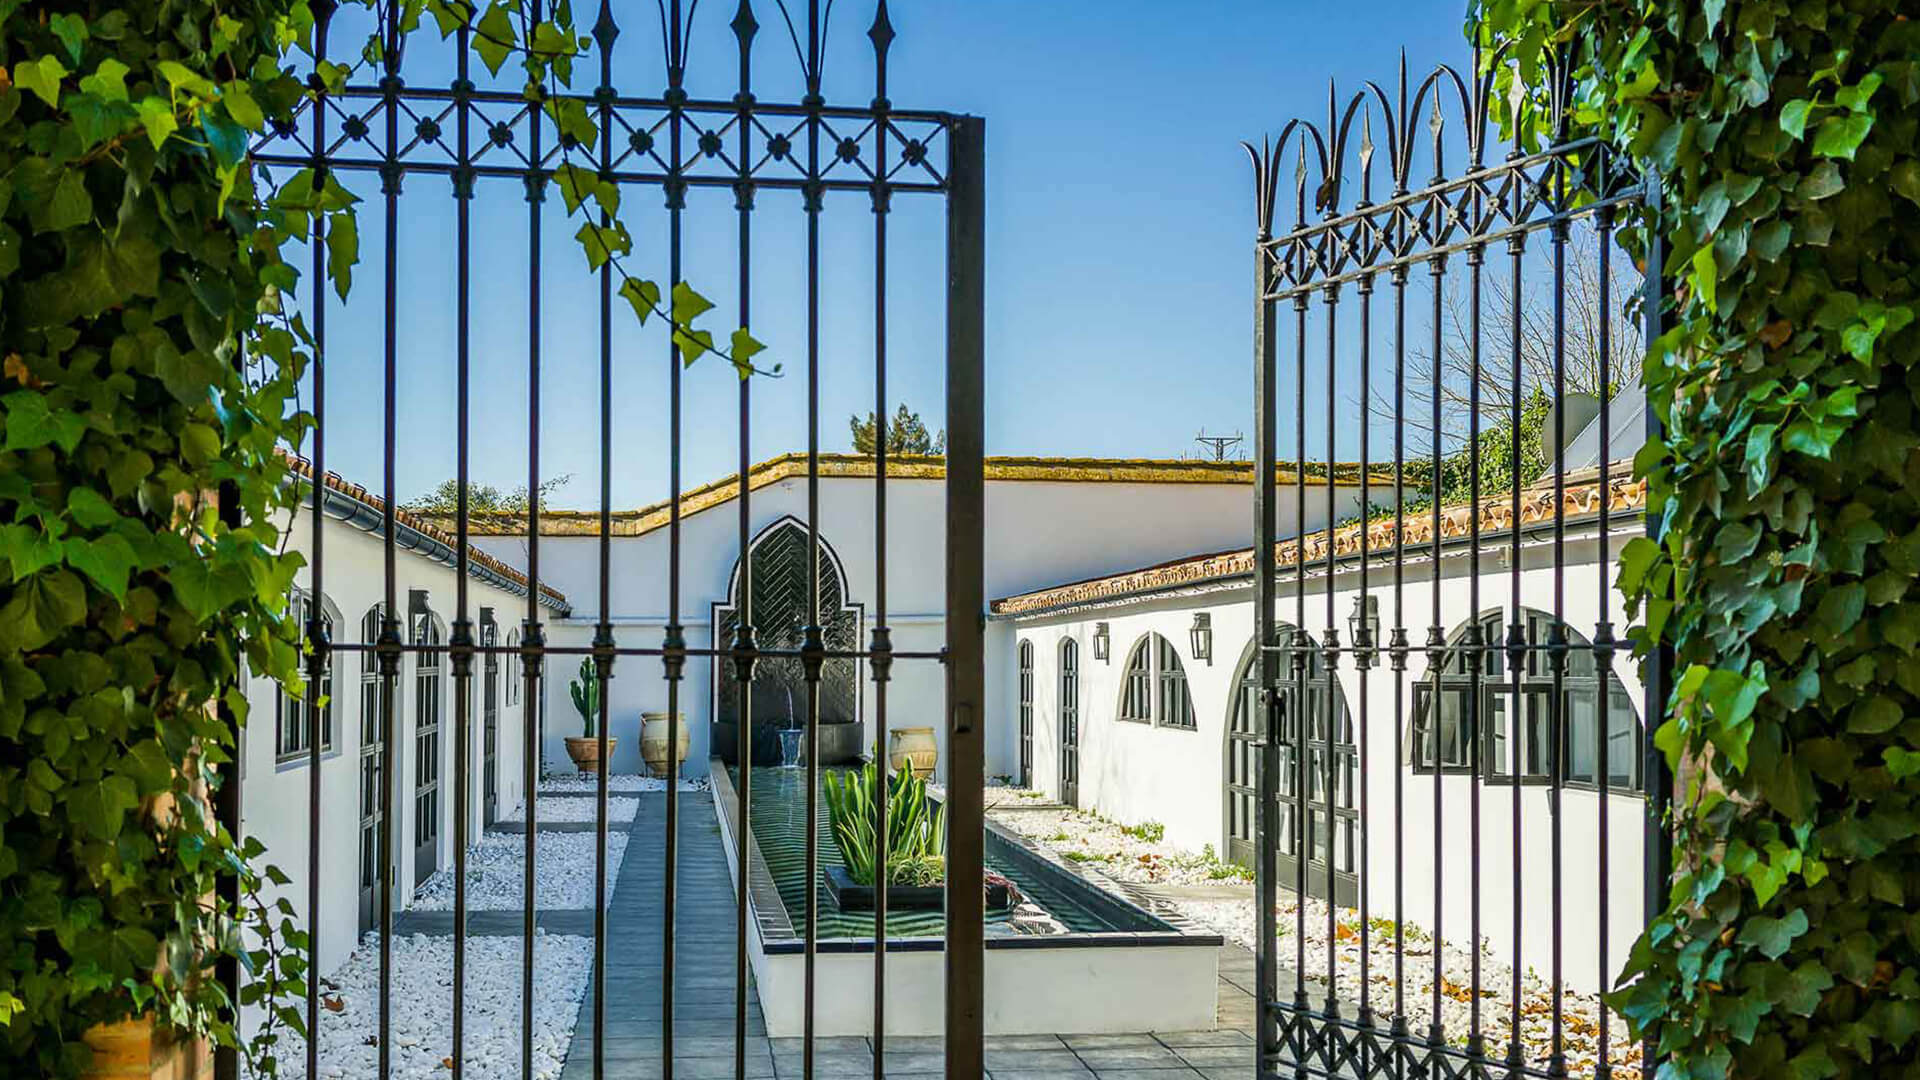 Large property outside Barcelona iron gate entrance to courtyard and fountain